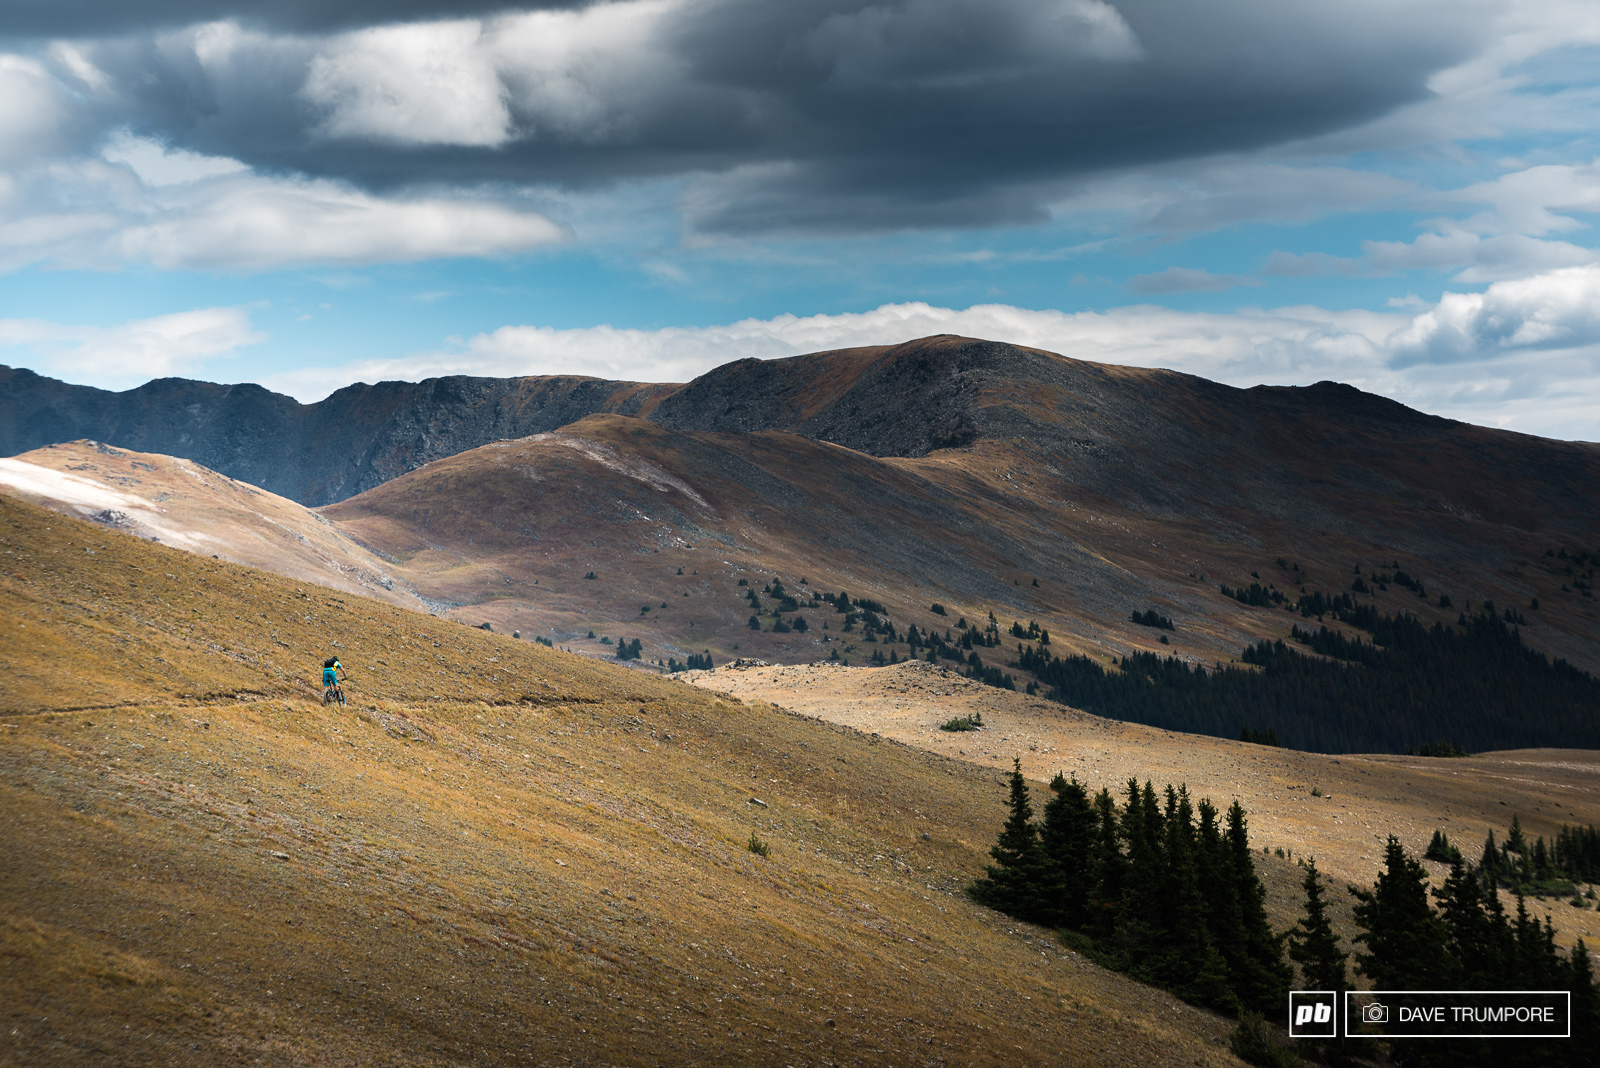 Shawn Neer all alone on the high ridge that divides the east and west of the United States.